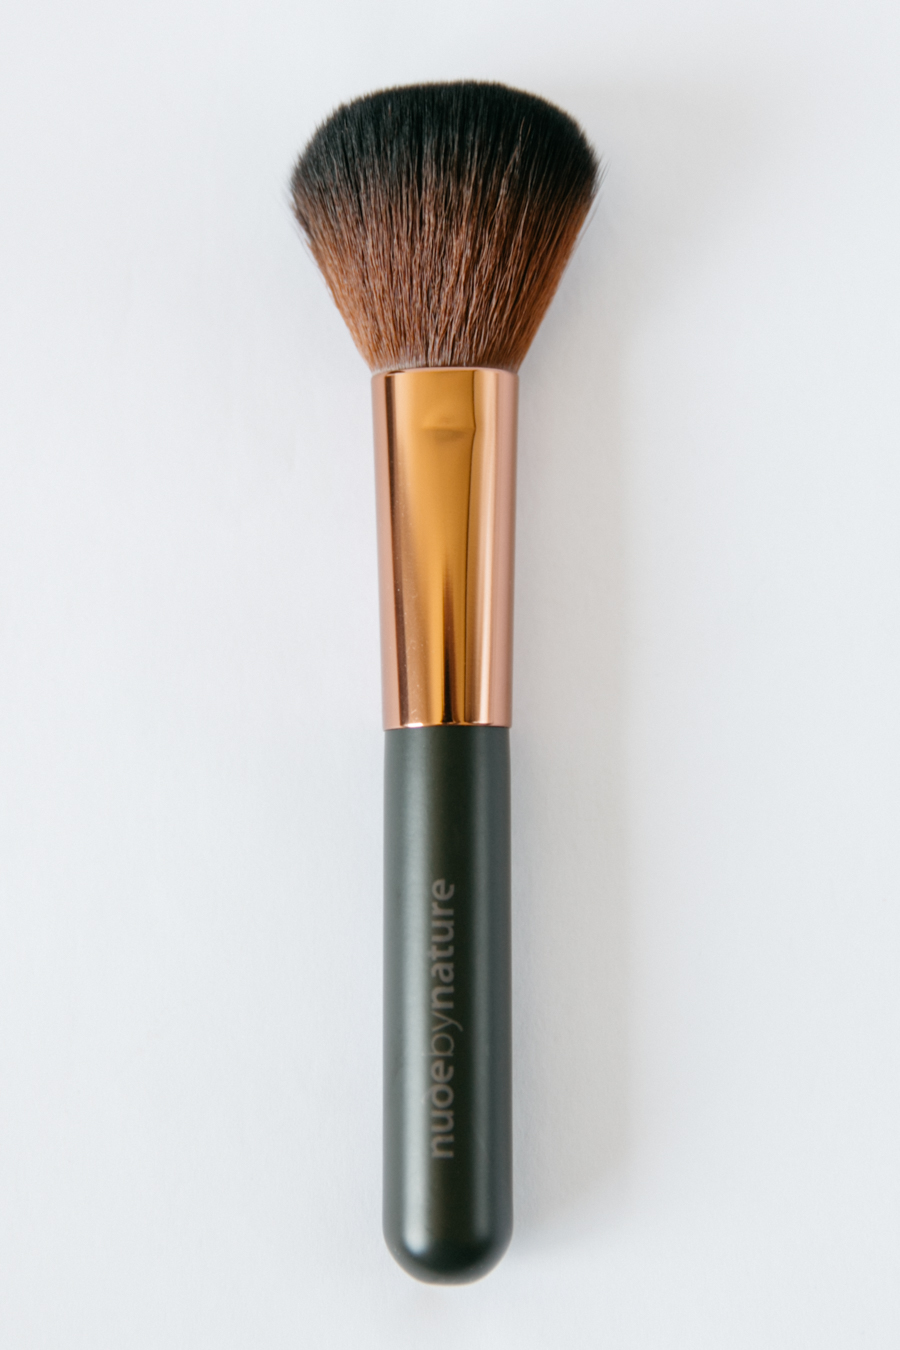 Nude By Nature powder brush from the Professional Brush Set.